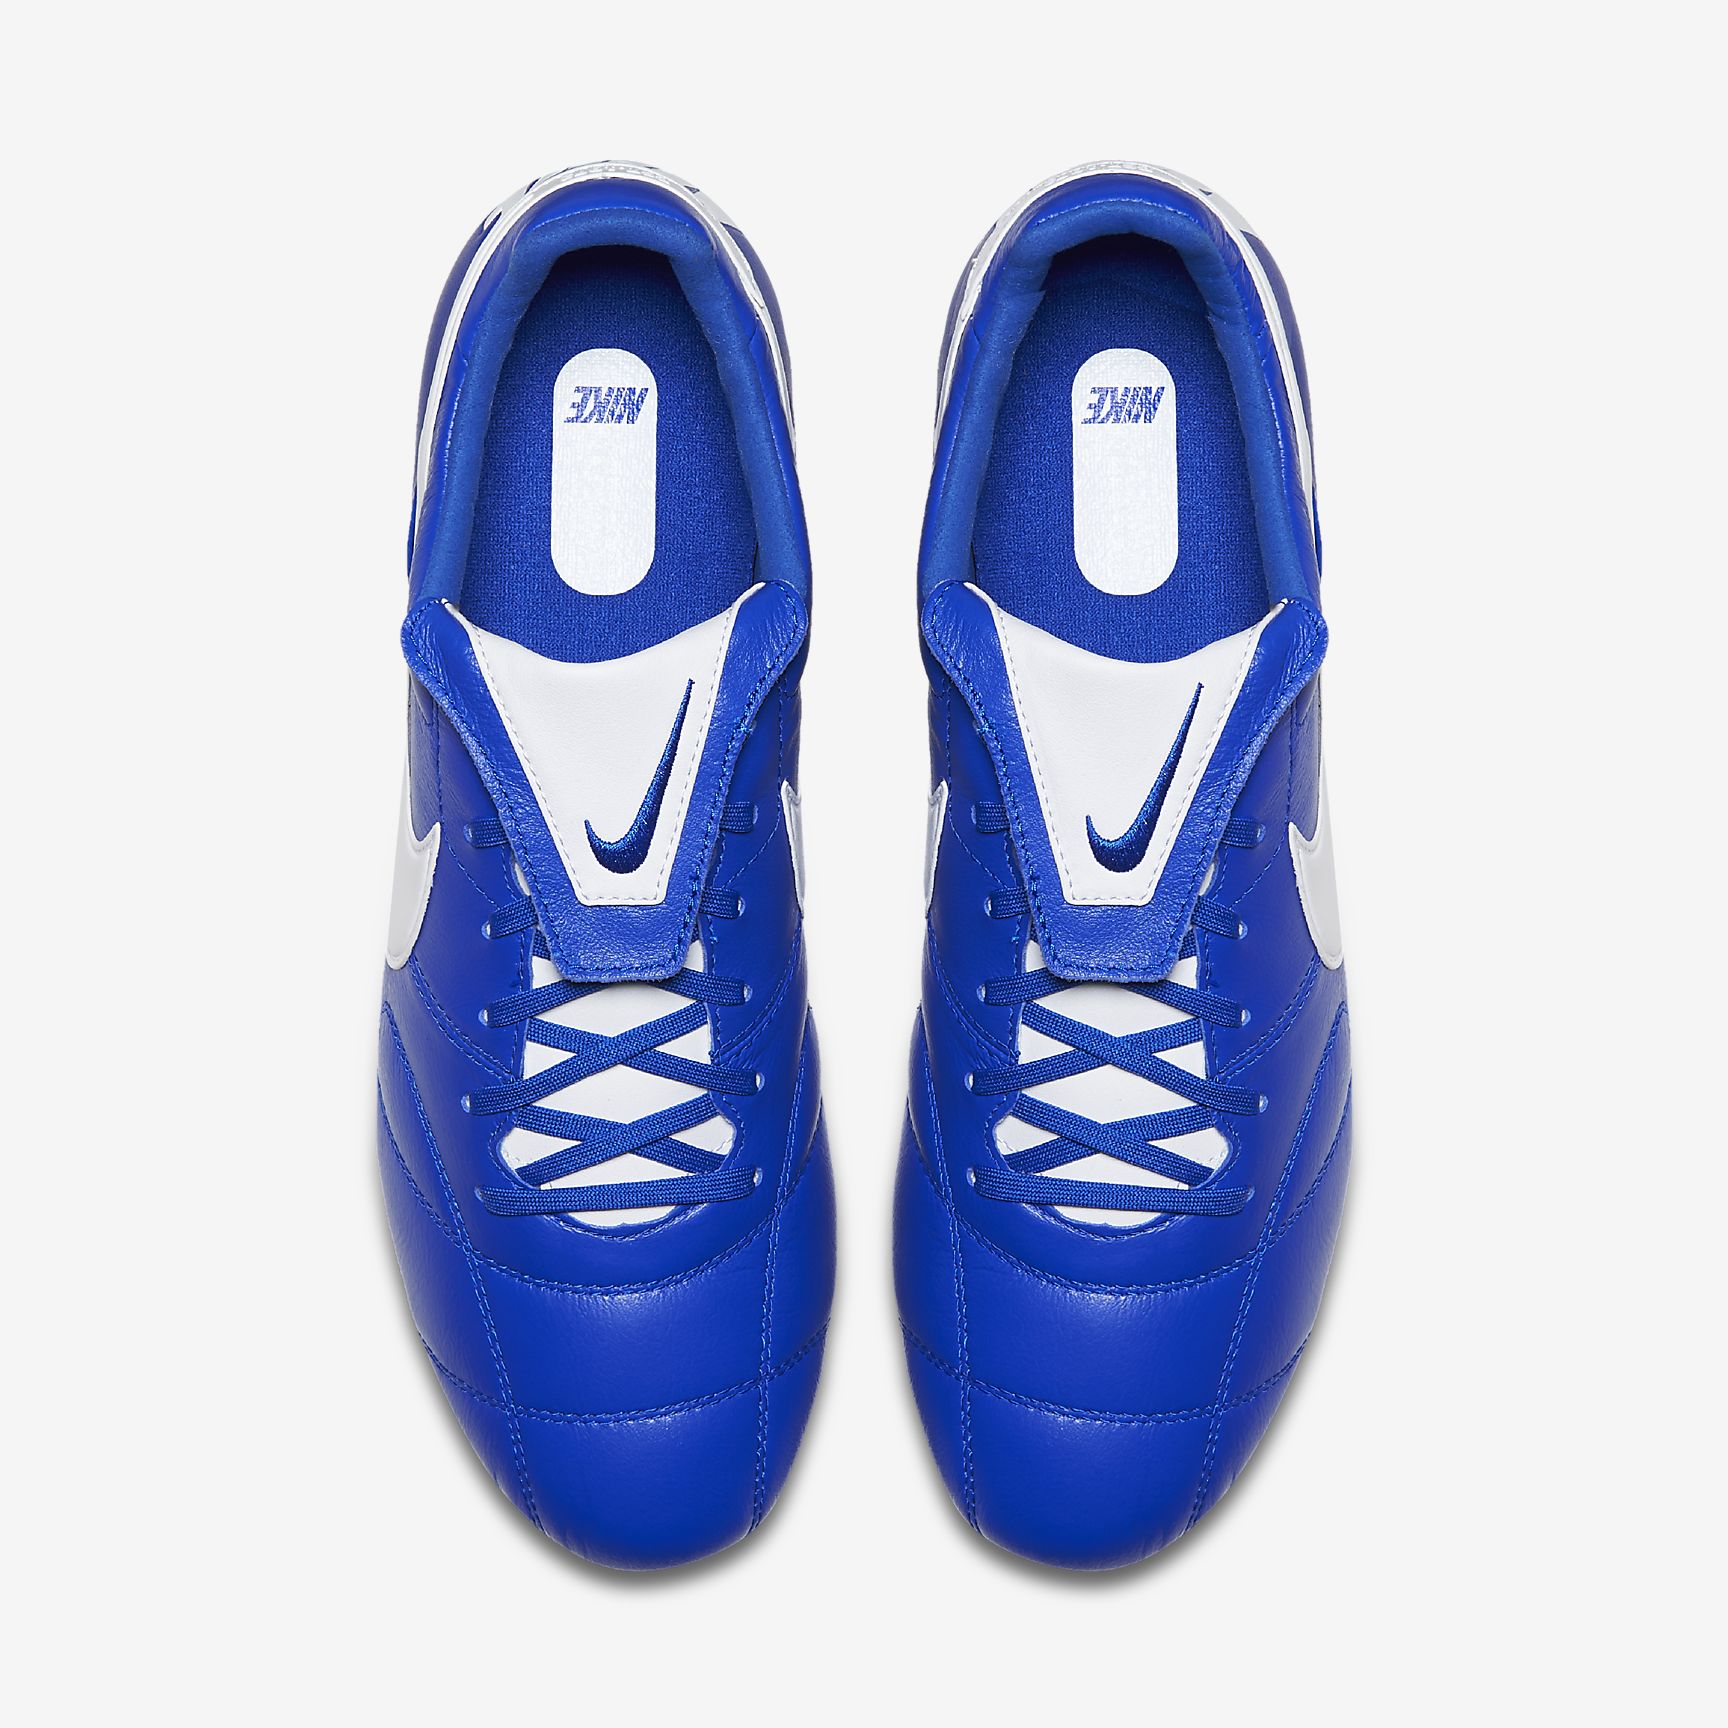 premier-ii-firm-ground-soccer-cleat-LBTgEwNO3.jpg